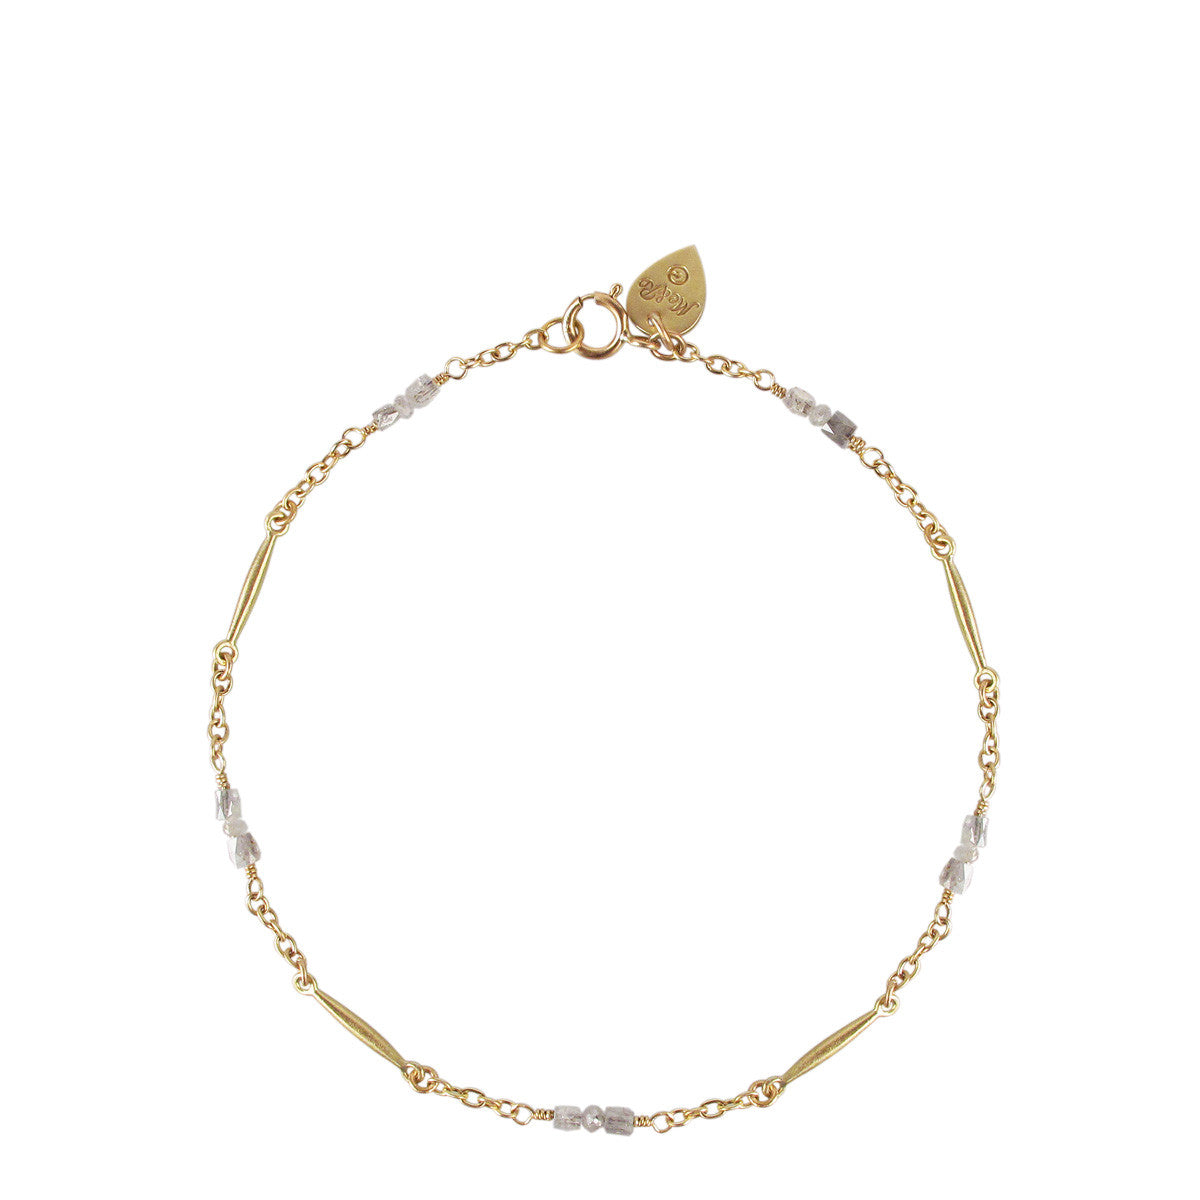 18K Gold Lure Bracelet with Opaque Diamonds